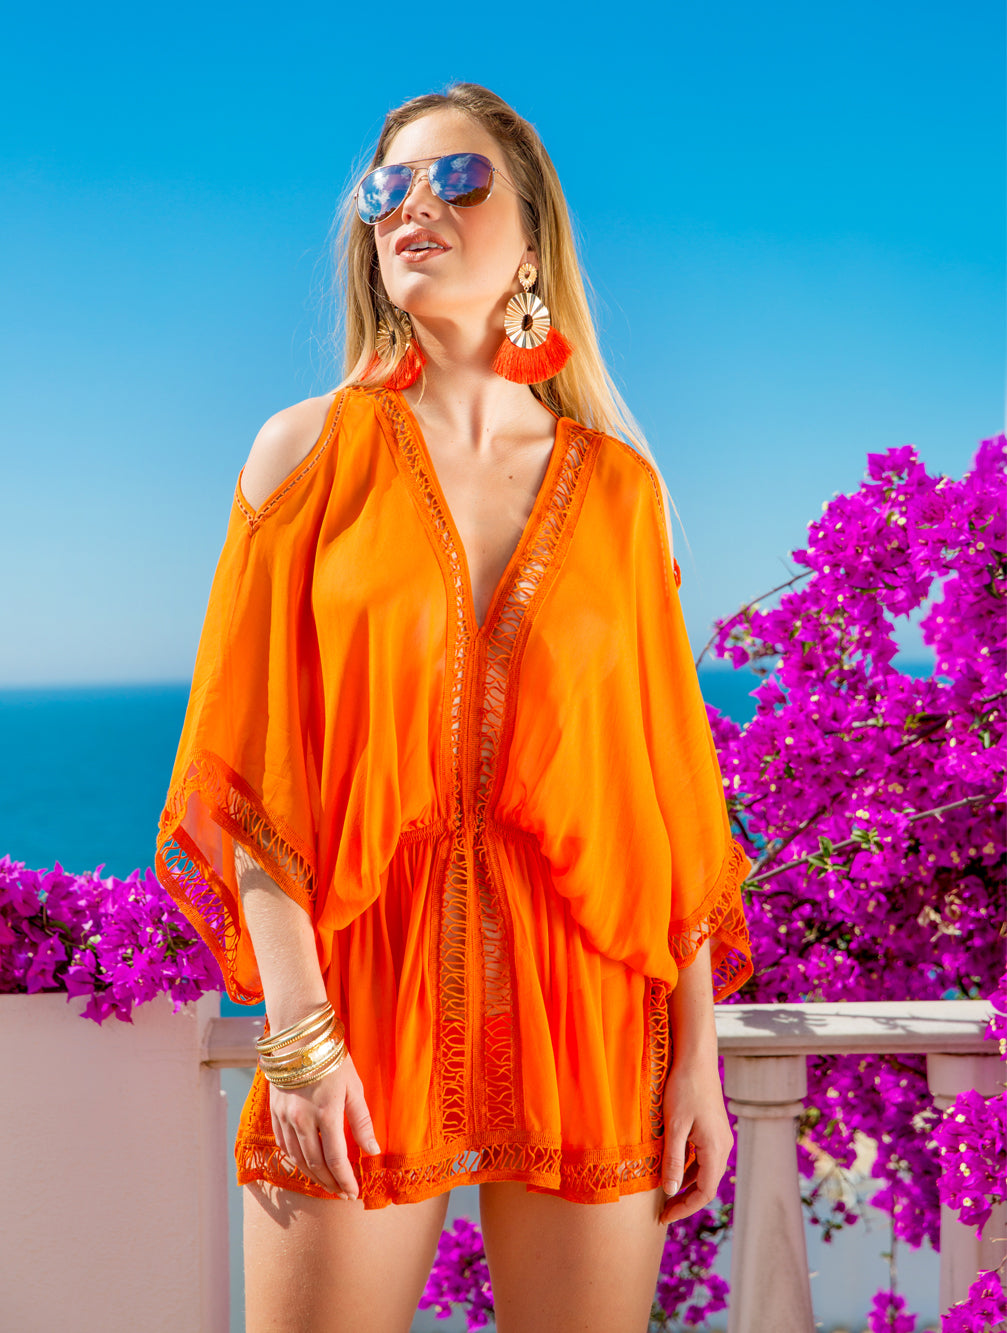 MYKONOS KAFTAN - Kaia London